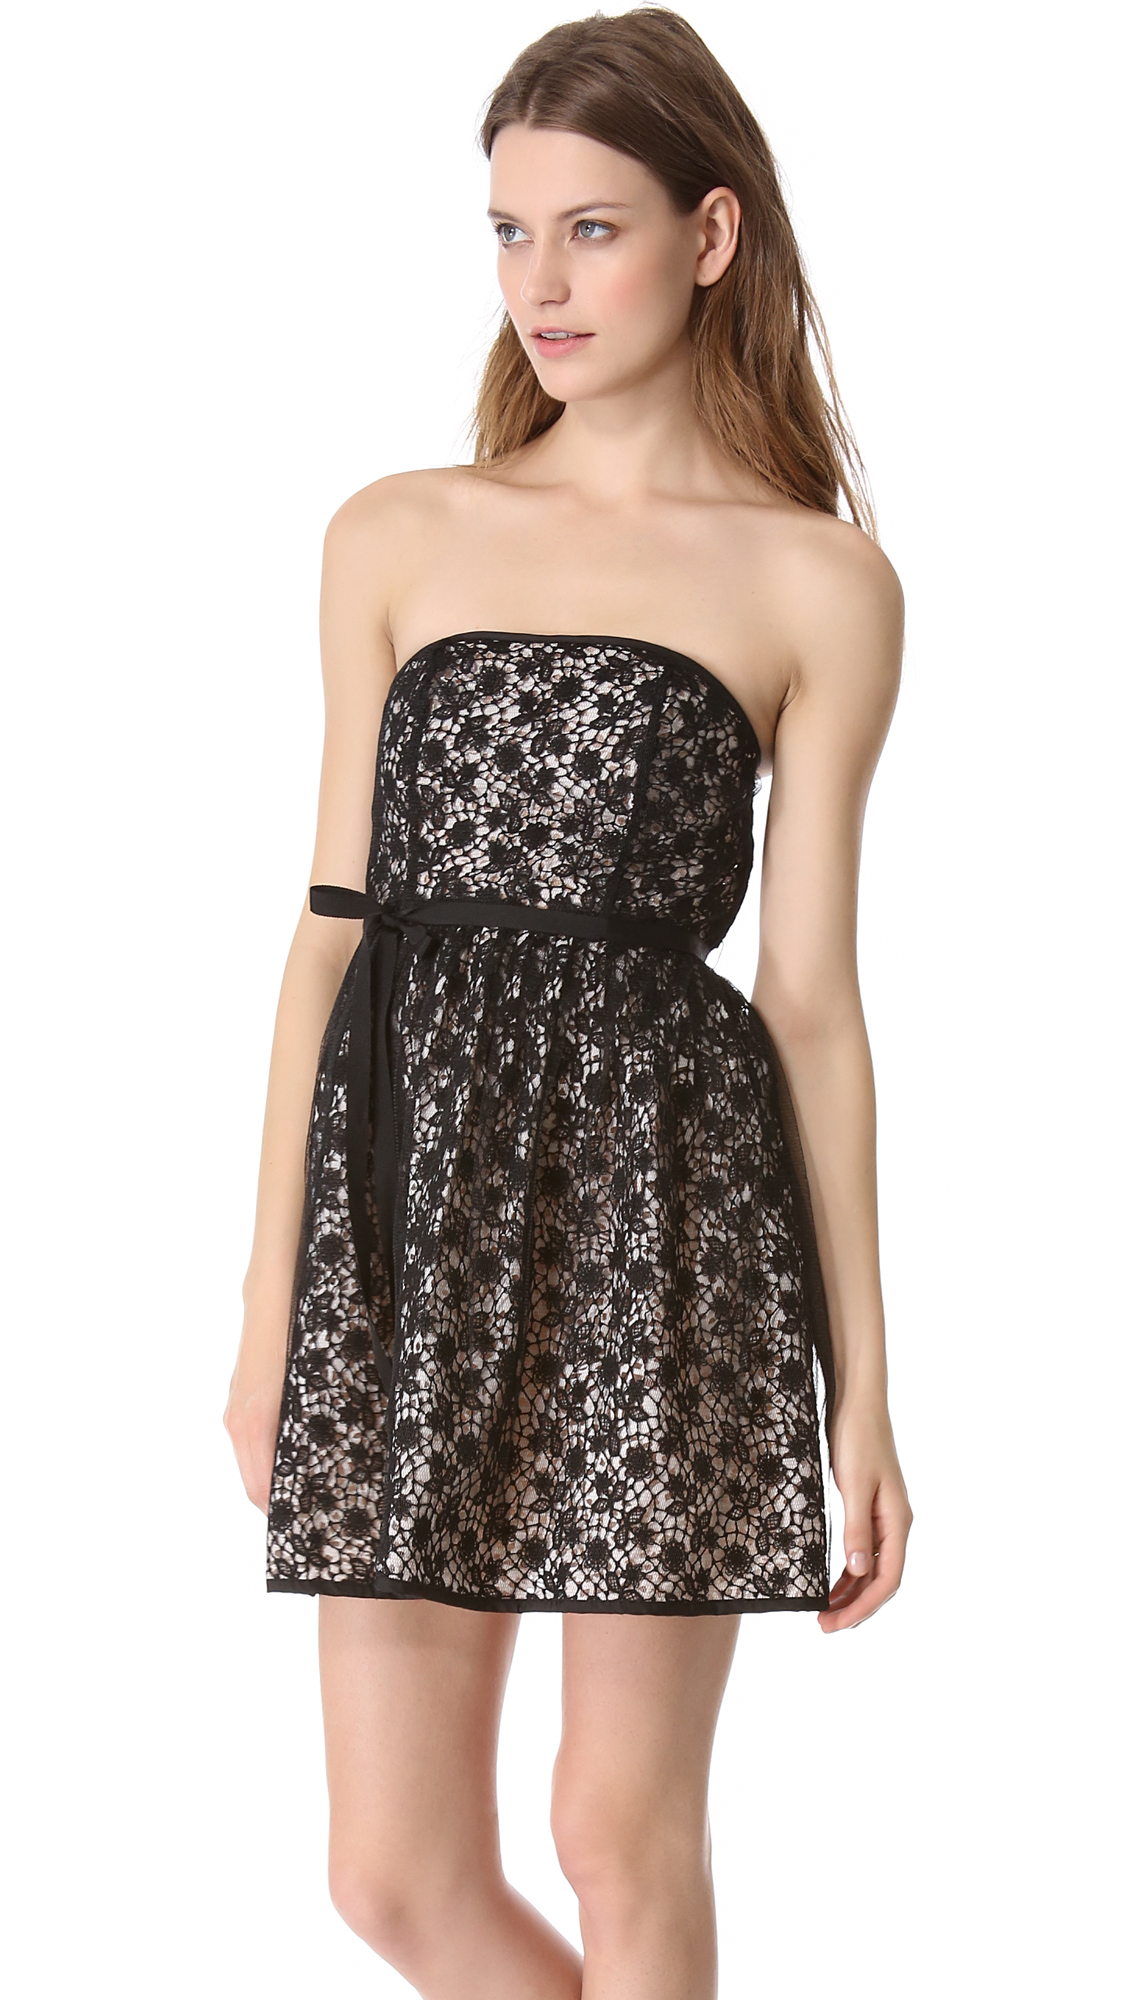 Red Valentino Spring 2016: Red Valentino Strapless Lace Dress In Black